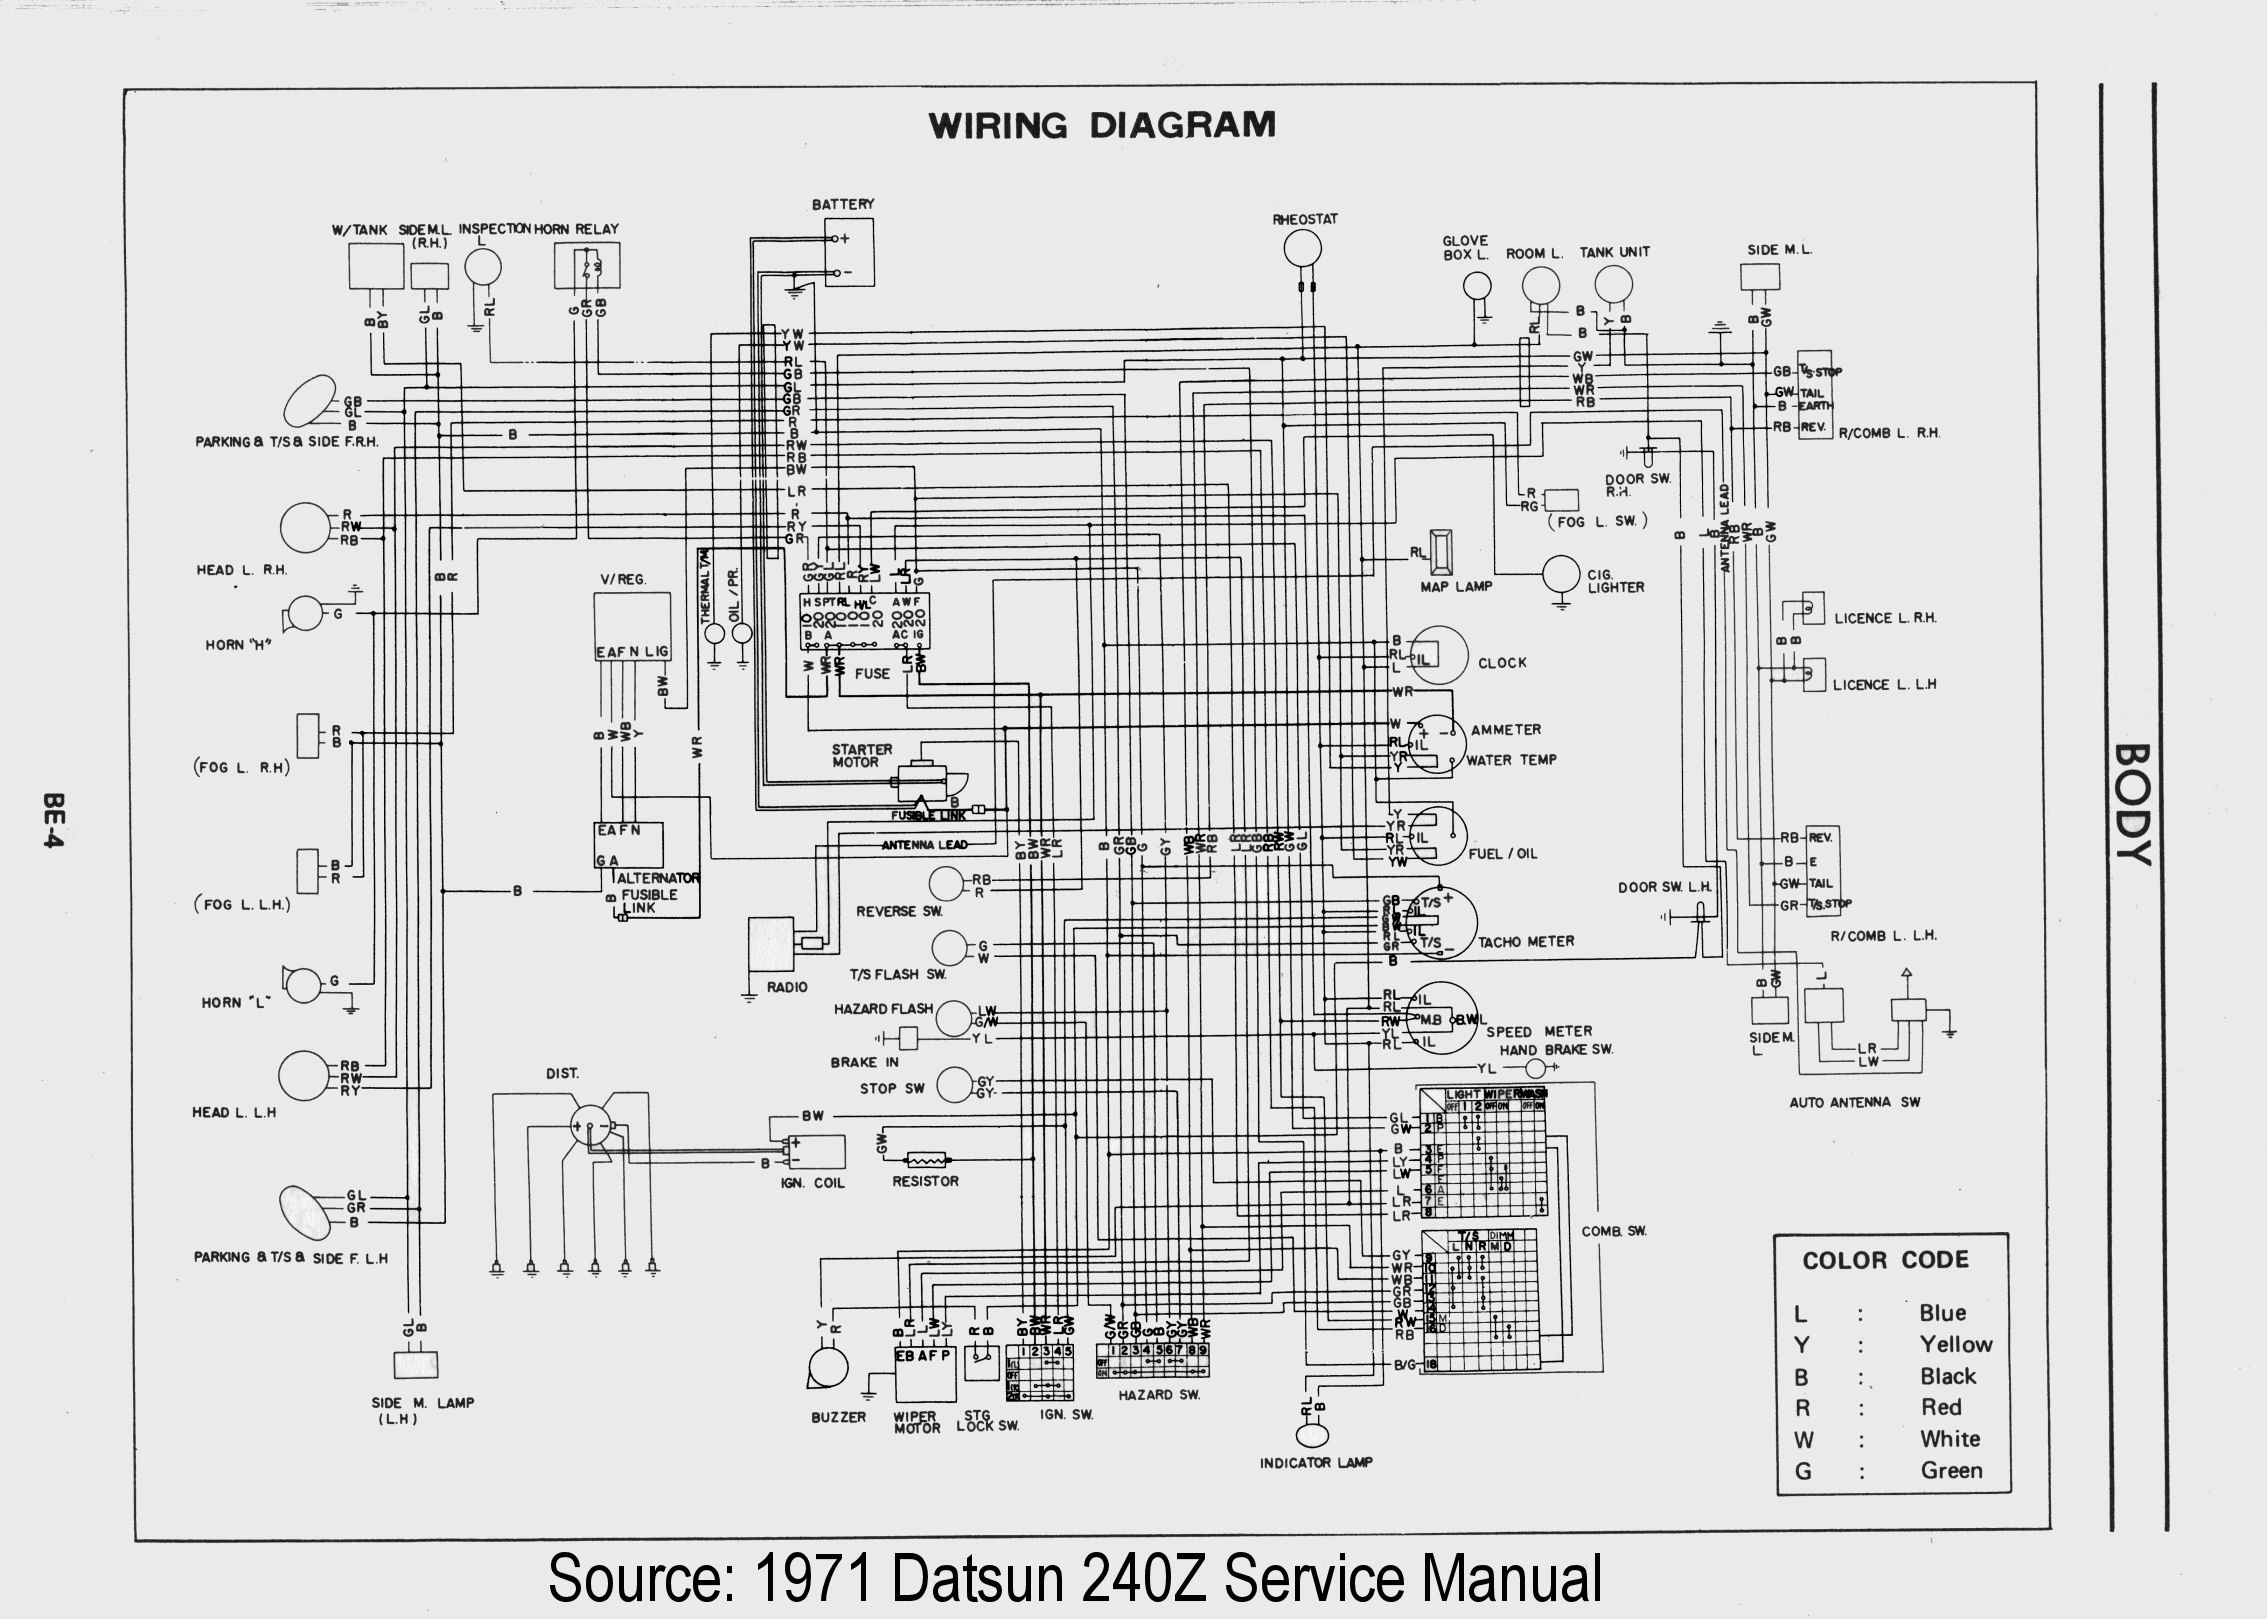 Wiring Diagram HiRes 2 280z wiring diagram 280z tachometer wiring \u2022 wiring diagrams j wolf pw hood wiring diagram at eliteediting.co